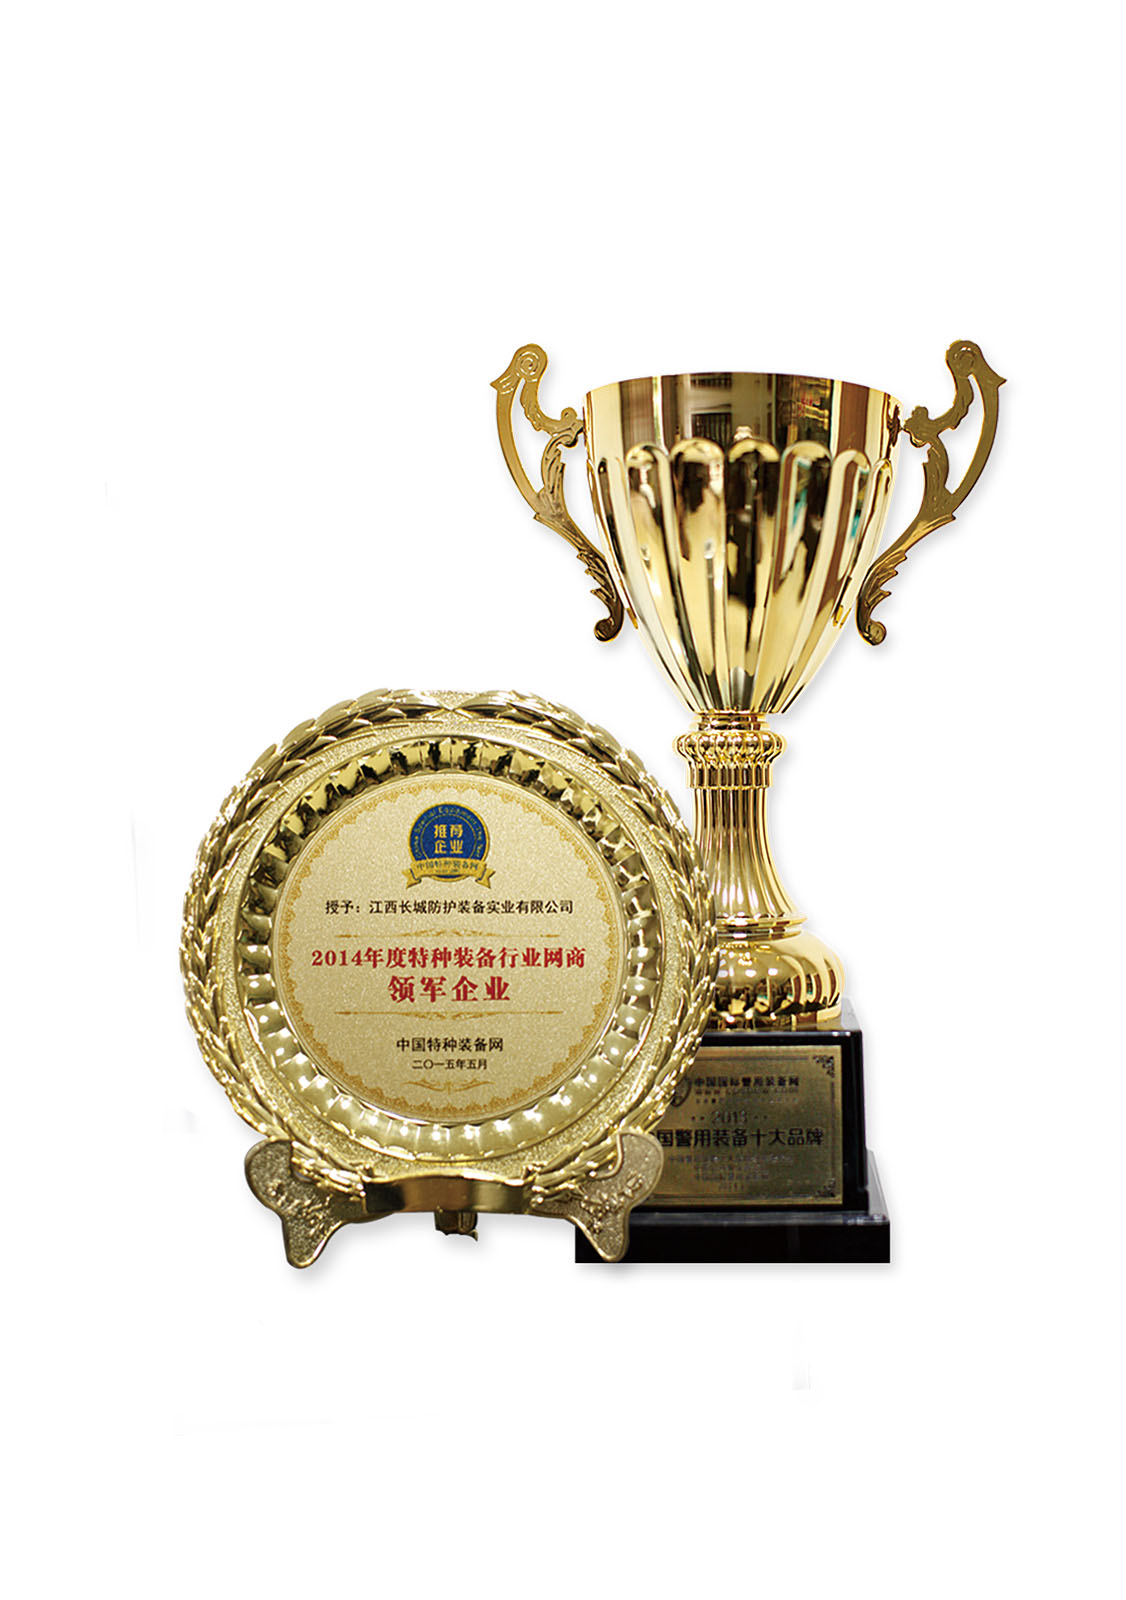 The champion cup of Protective Equipment Industry